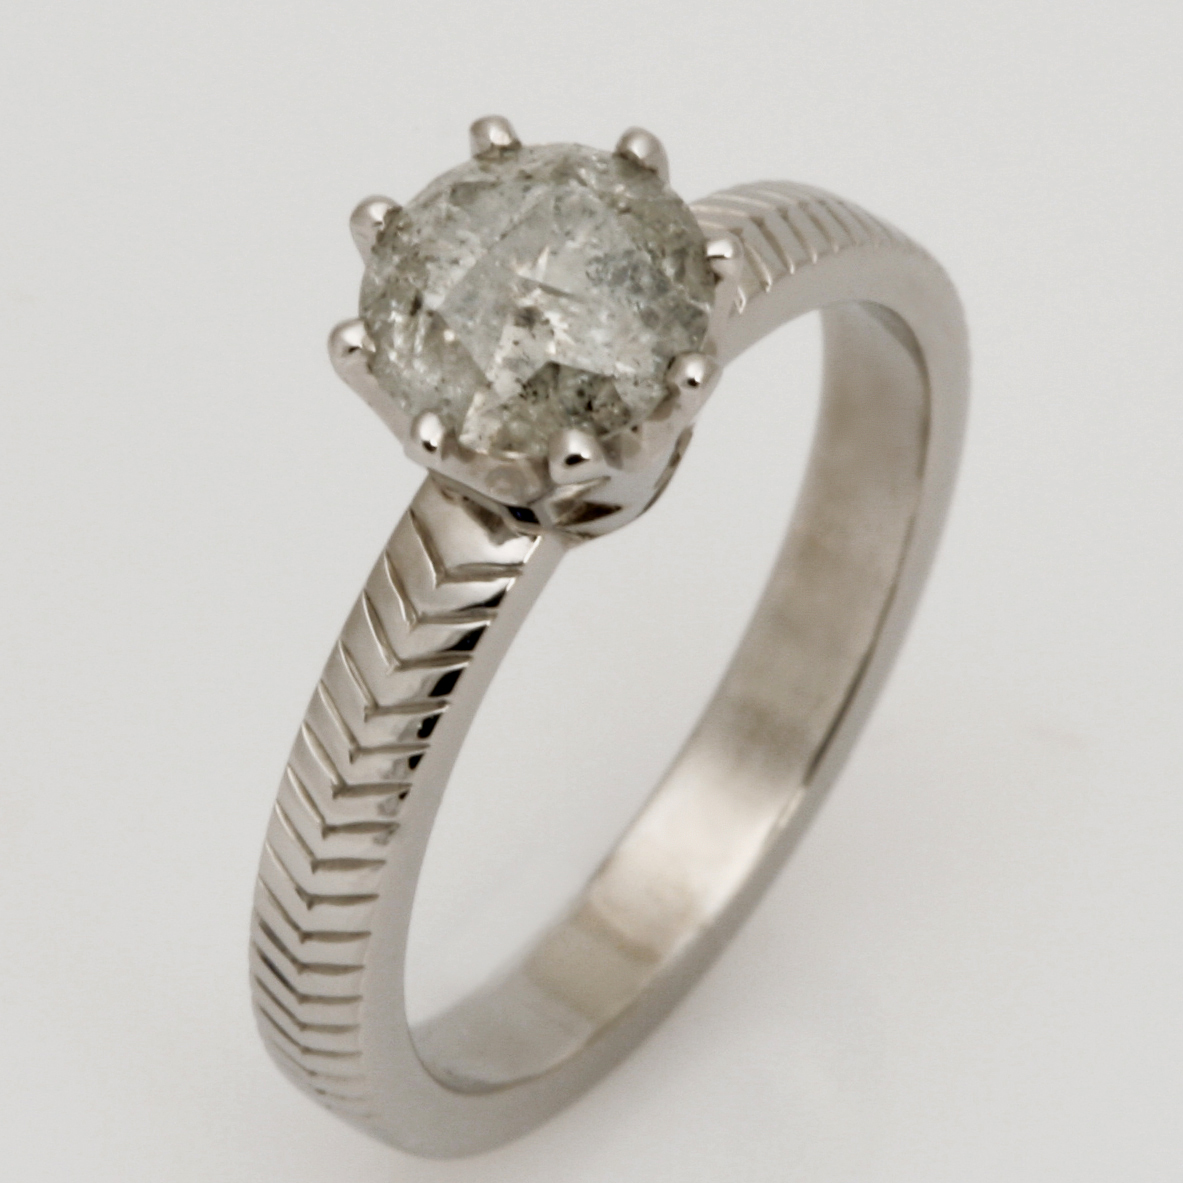 Ladies handmade Palladium 'Salt & Pepper' Diamond Engagement ring